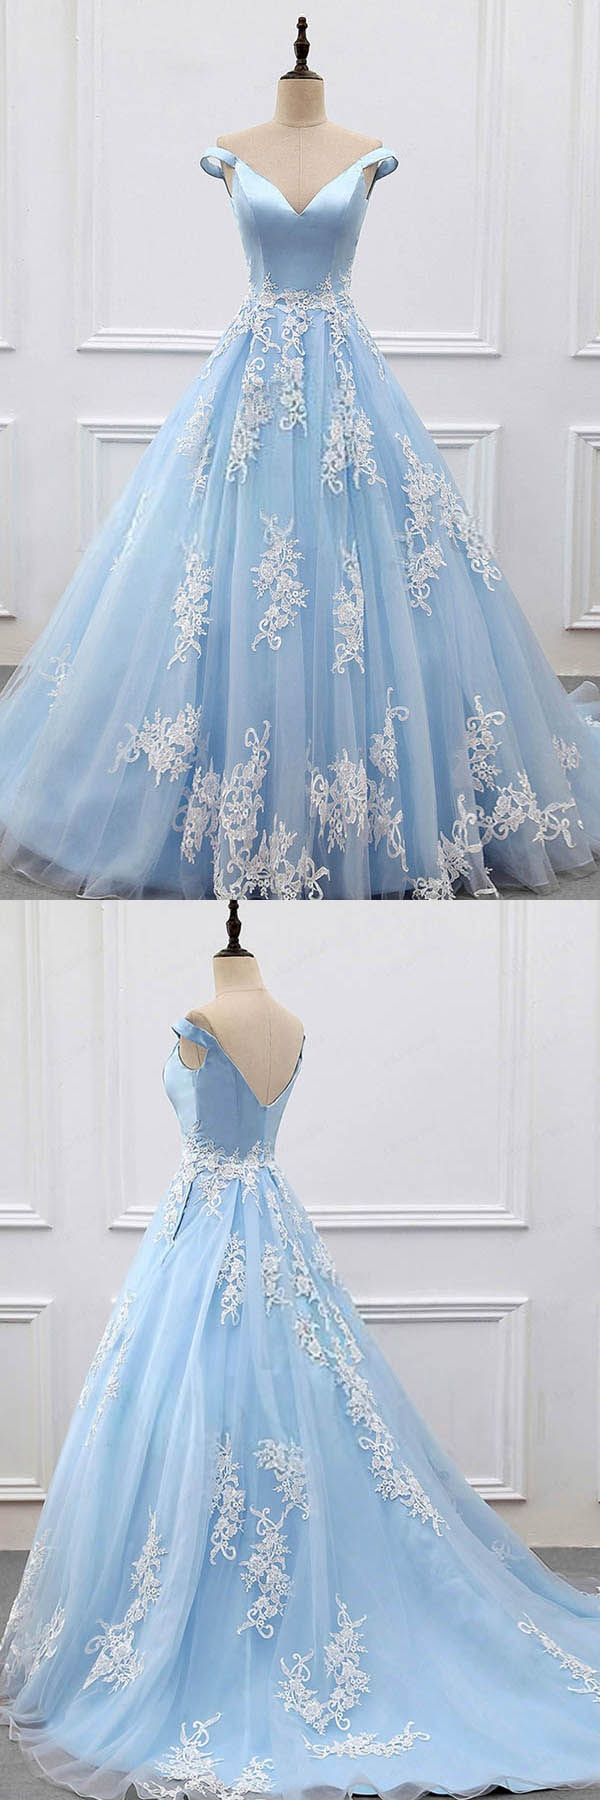 Ball gown prom dresses long prom dresses cheap prom dresses